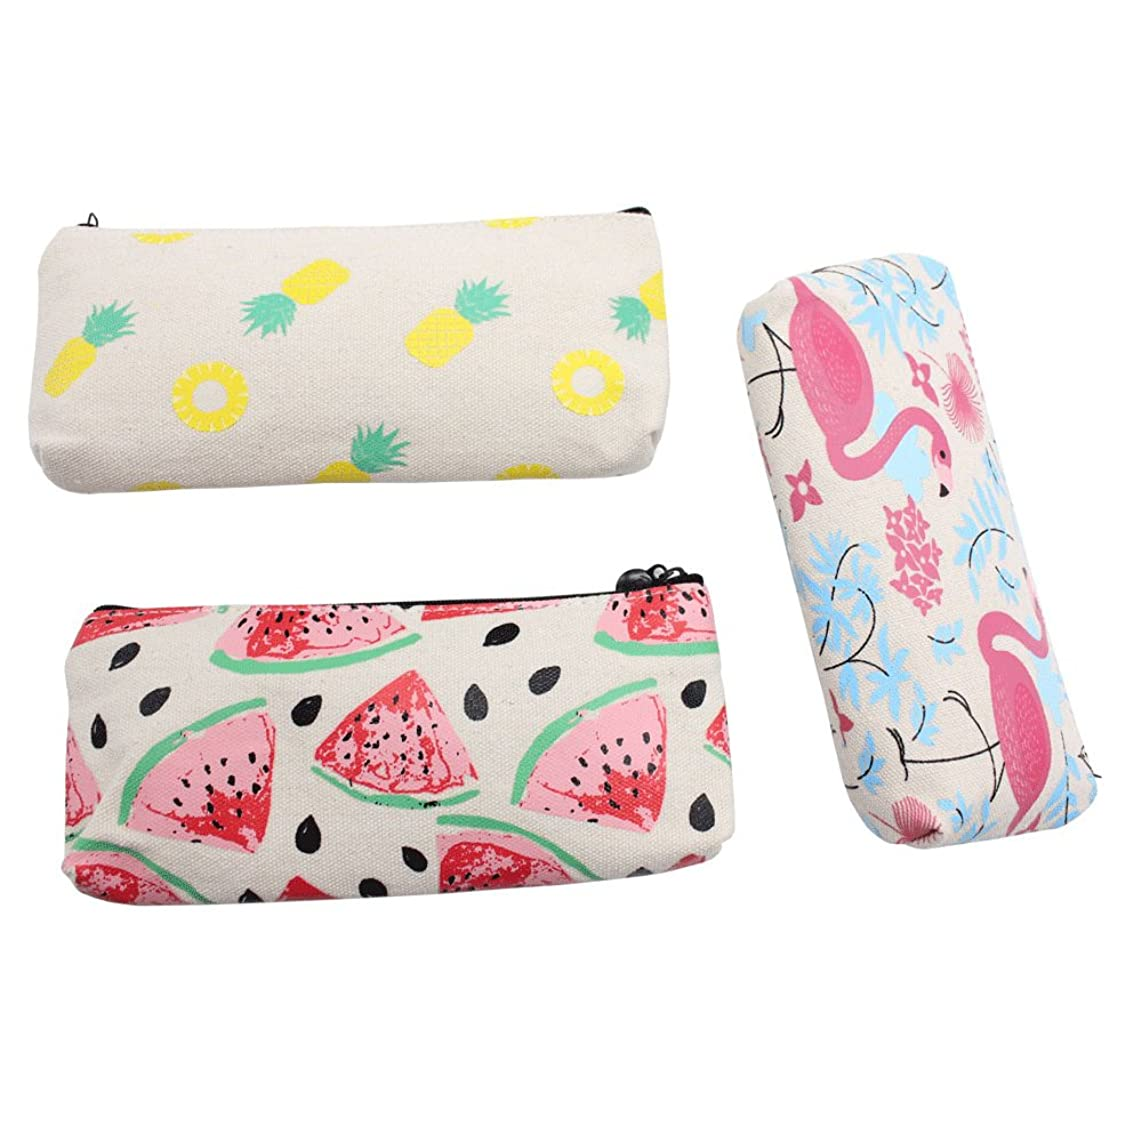 Mziart Cute Fruit and Flamingo Canvas Pencil Bag Holder Pen Case Stationery Makeup Cosmetic Pouch Bag with Zipper, Set of 3